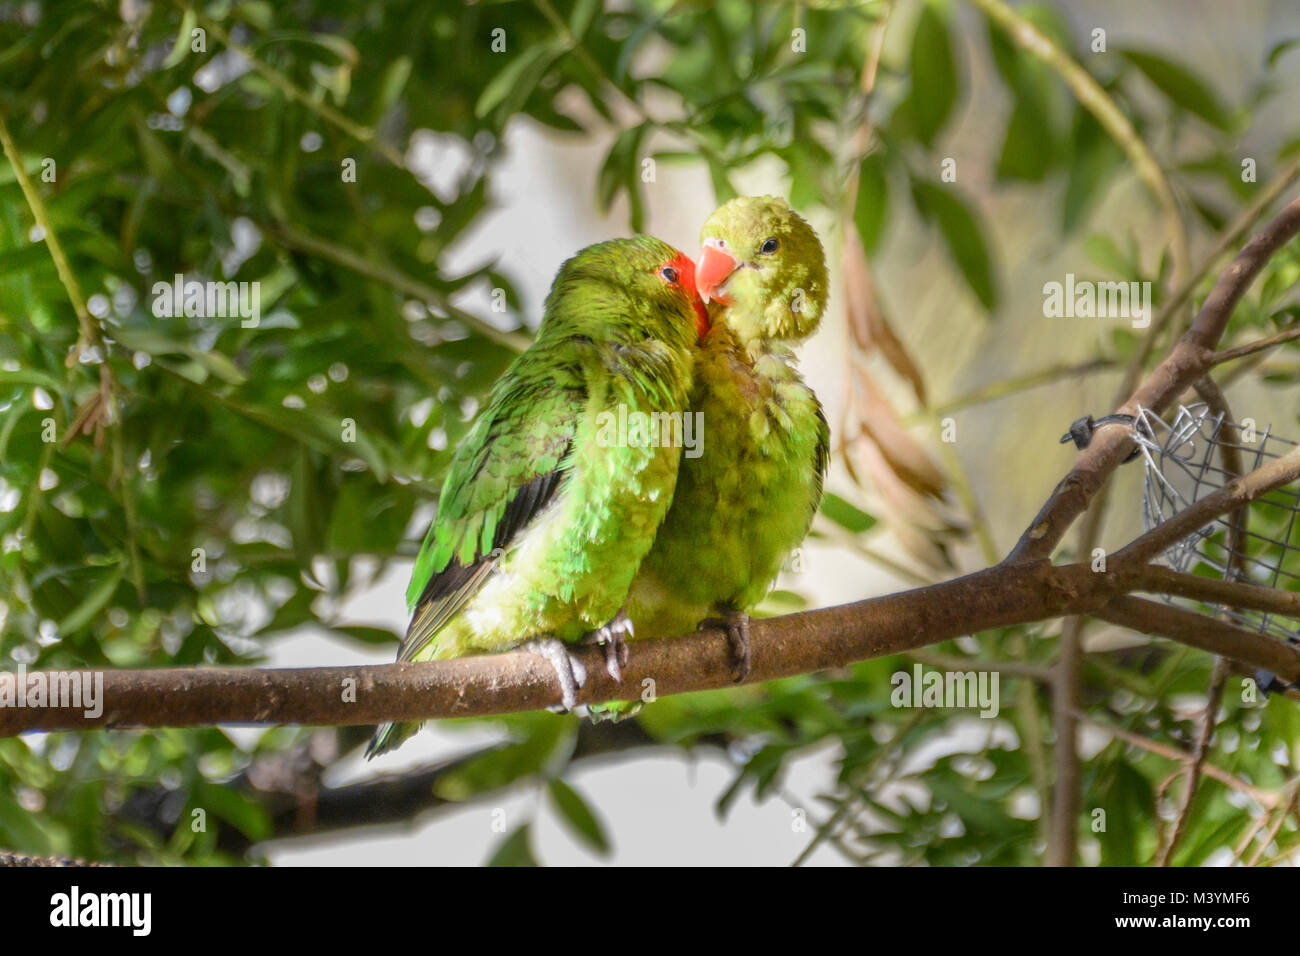 Paradise Park, Hayle, Cornwall. 13th Feb 2018. A pair of Lovebirds cuddle up on a branch while their chick peeks Stock Photo